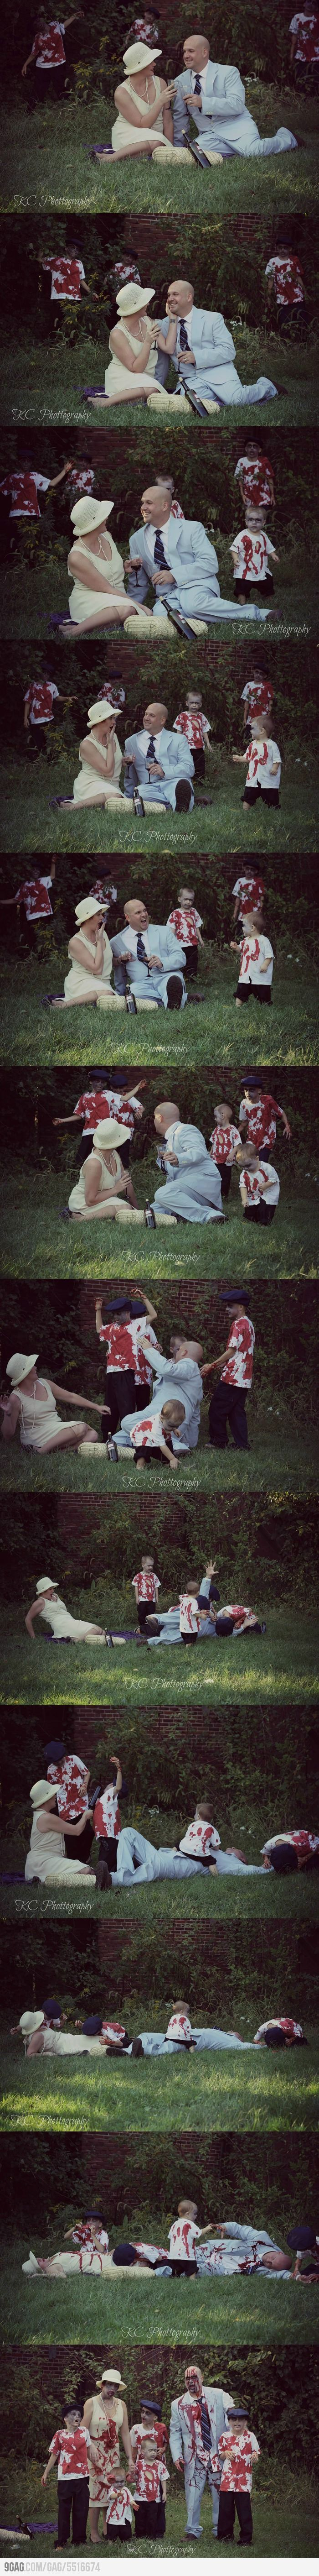 Zombies are Coming! An awesome family halloween photo shoot!